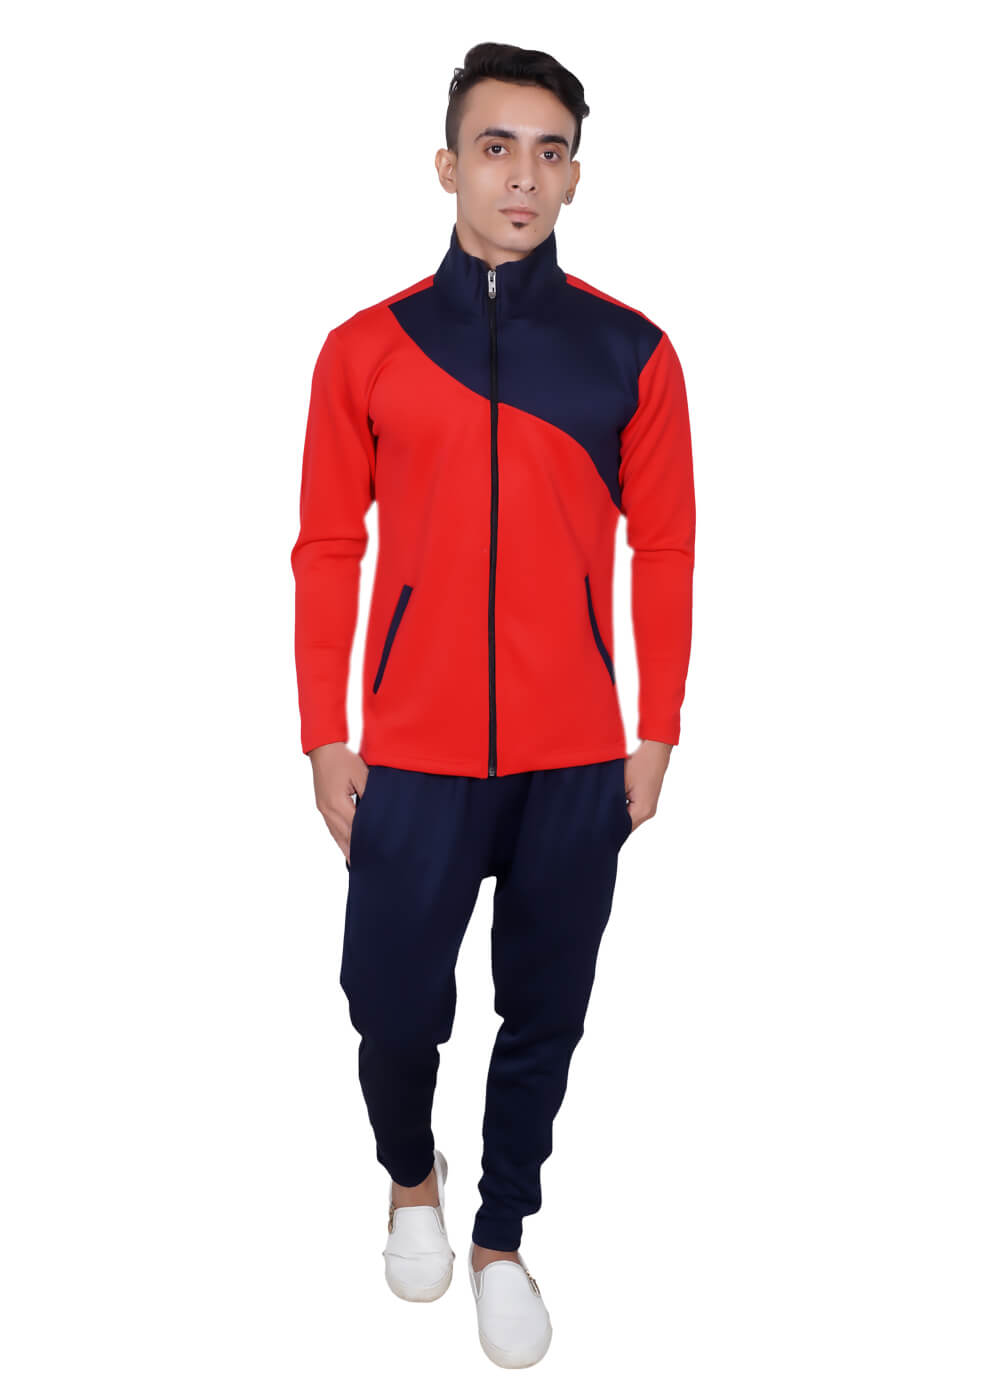 Cheap Tracksuits Manufacturers in Bikaner